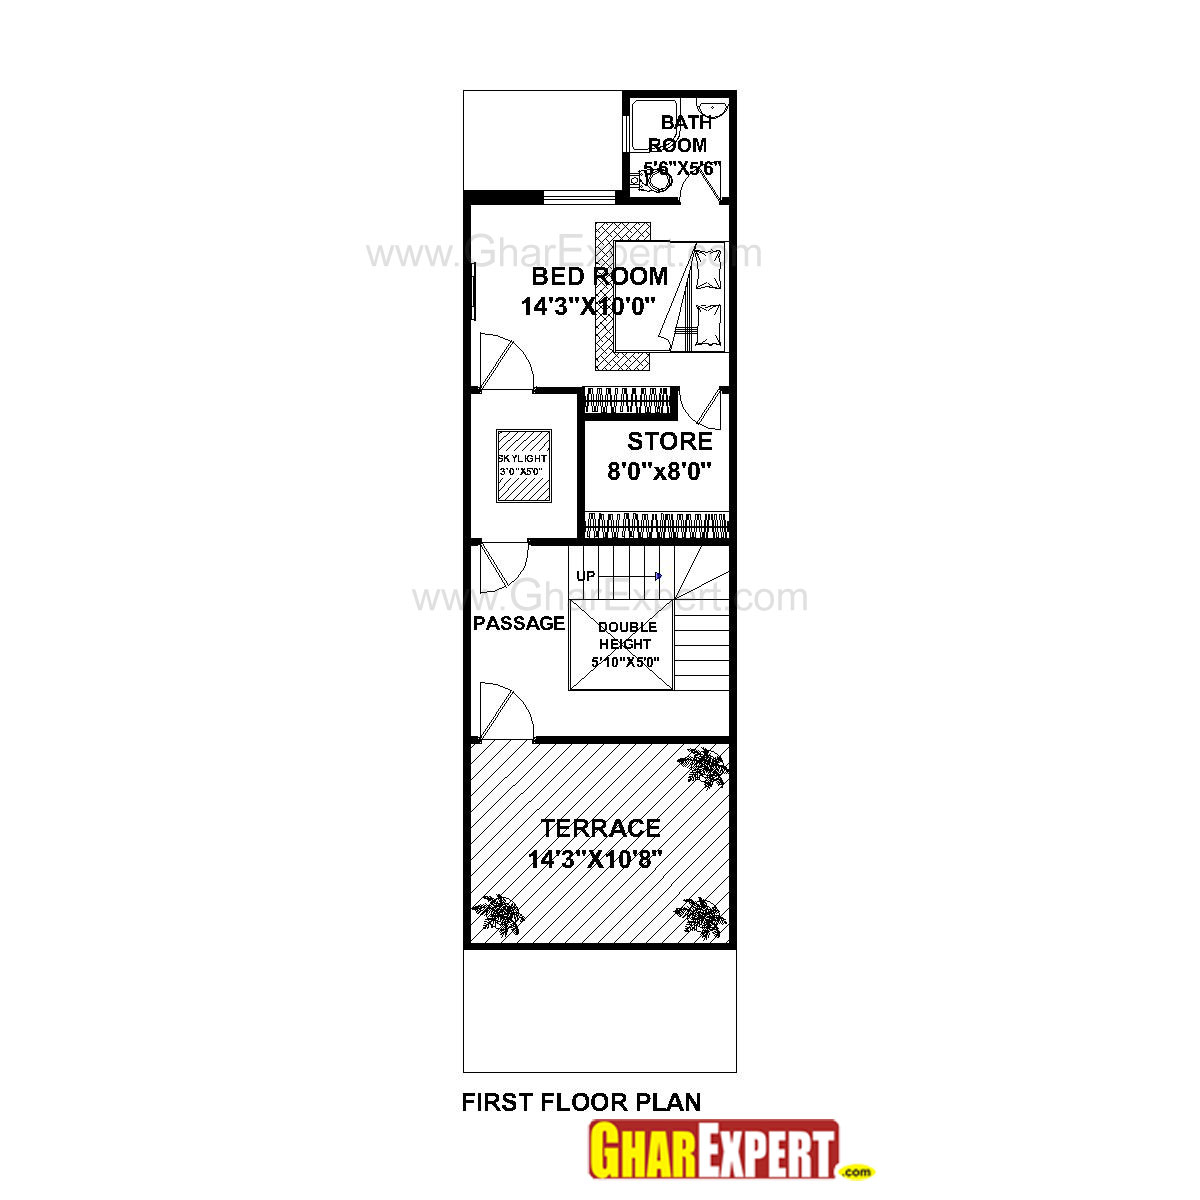 Drawing Floor Plans In Excel House Plan For 16 Feet By 54 Feet Plot Plot Size 96